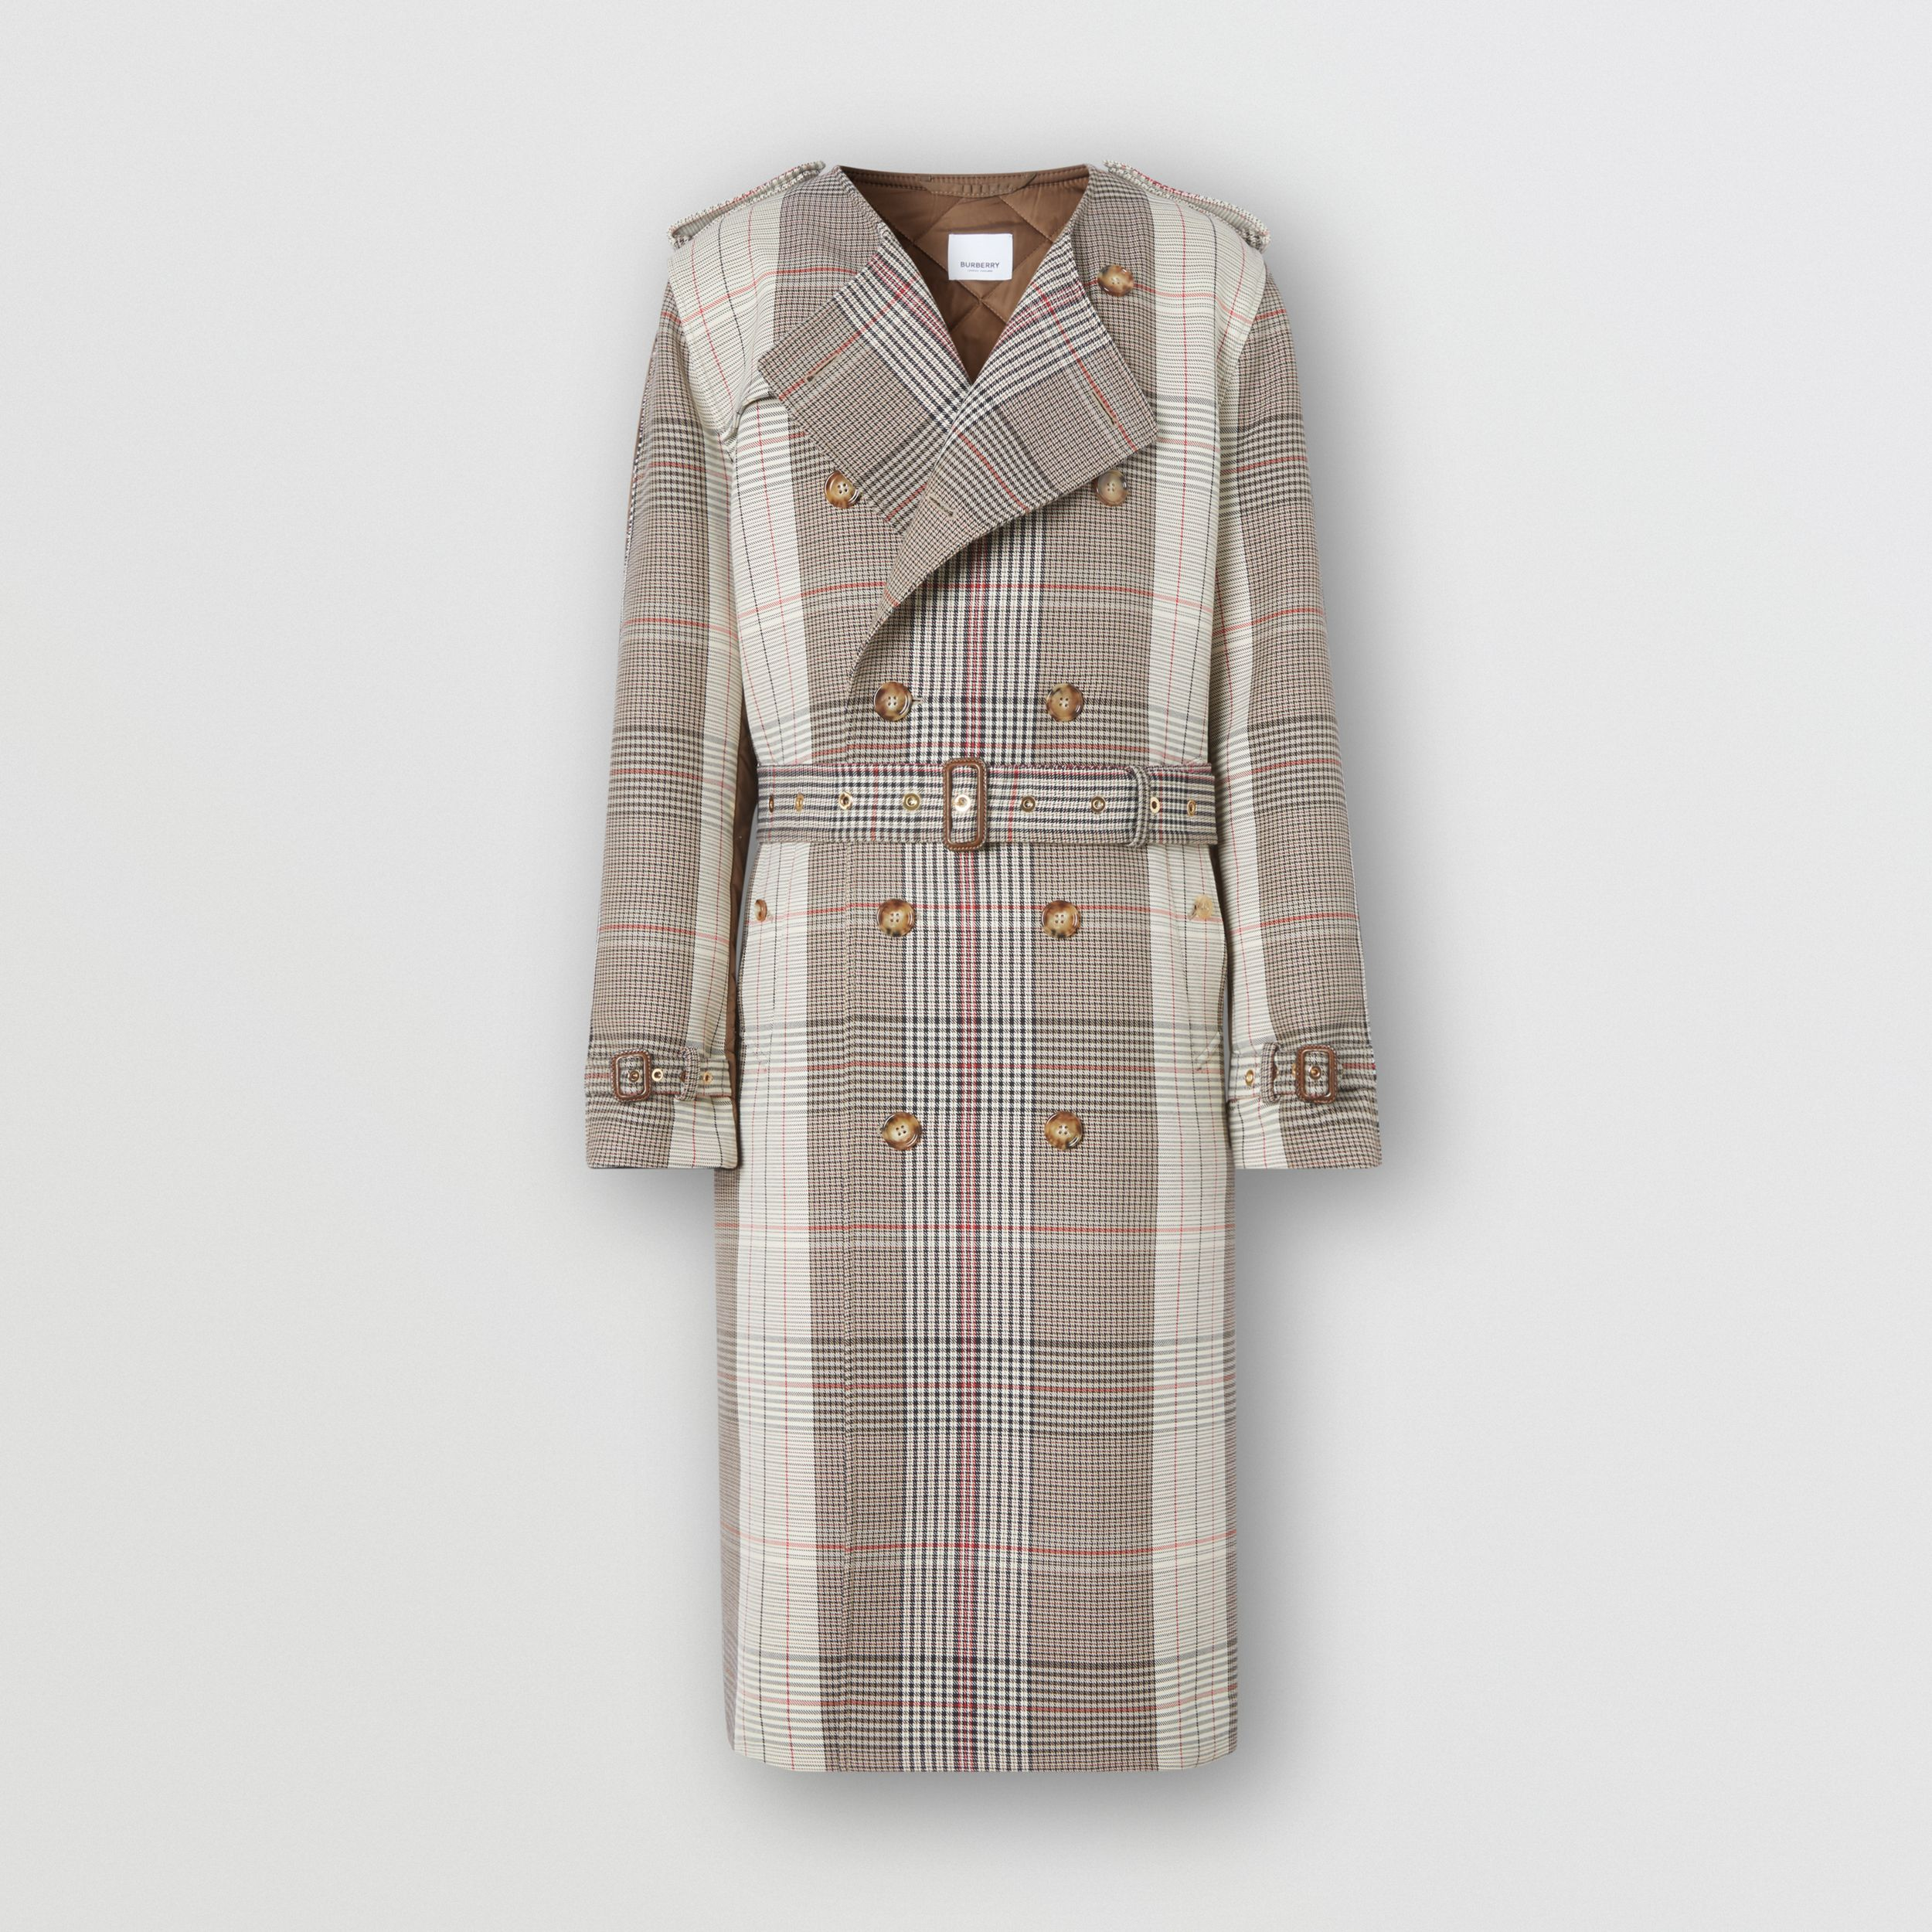 Quilted Panel Check Wool Cotton Trench Coat in Beige - Men | Burberry Hong Kong S.A.R. - 4